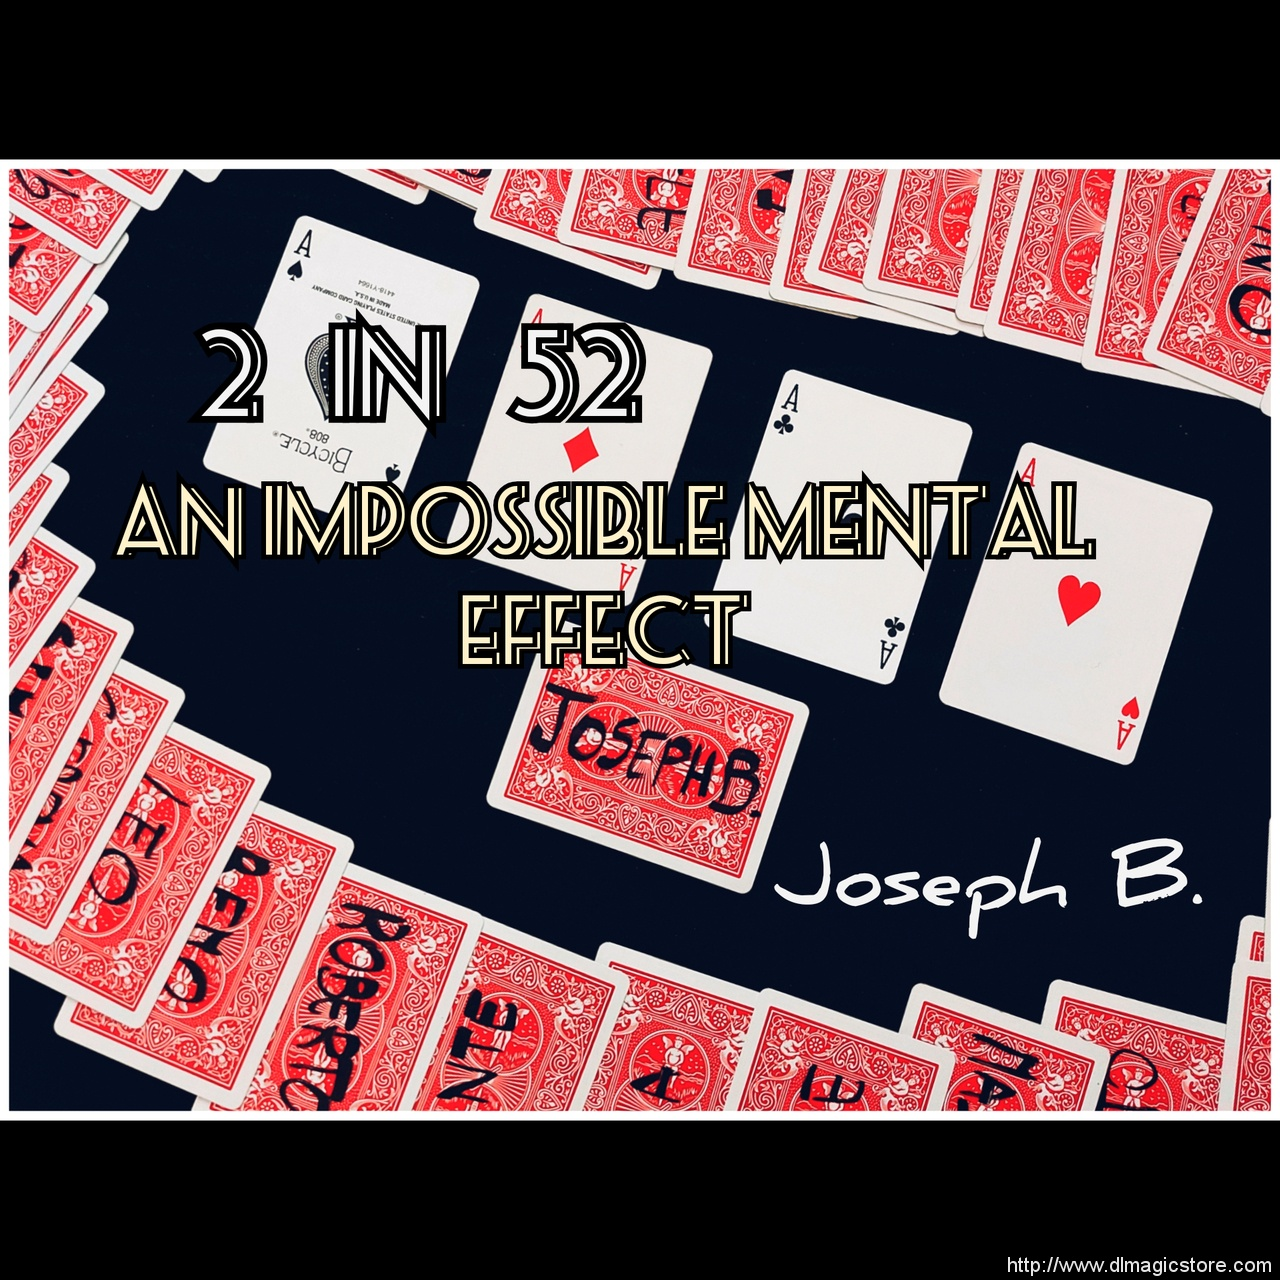 2 IN 52 By Joseph B. (Instant Download)